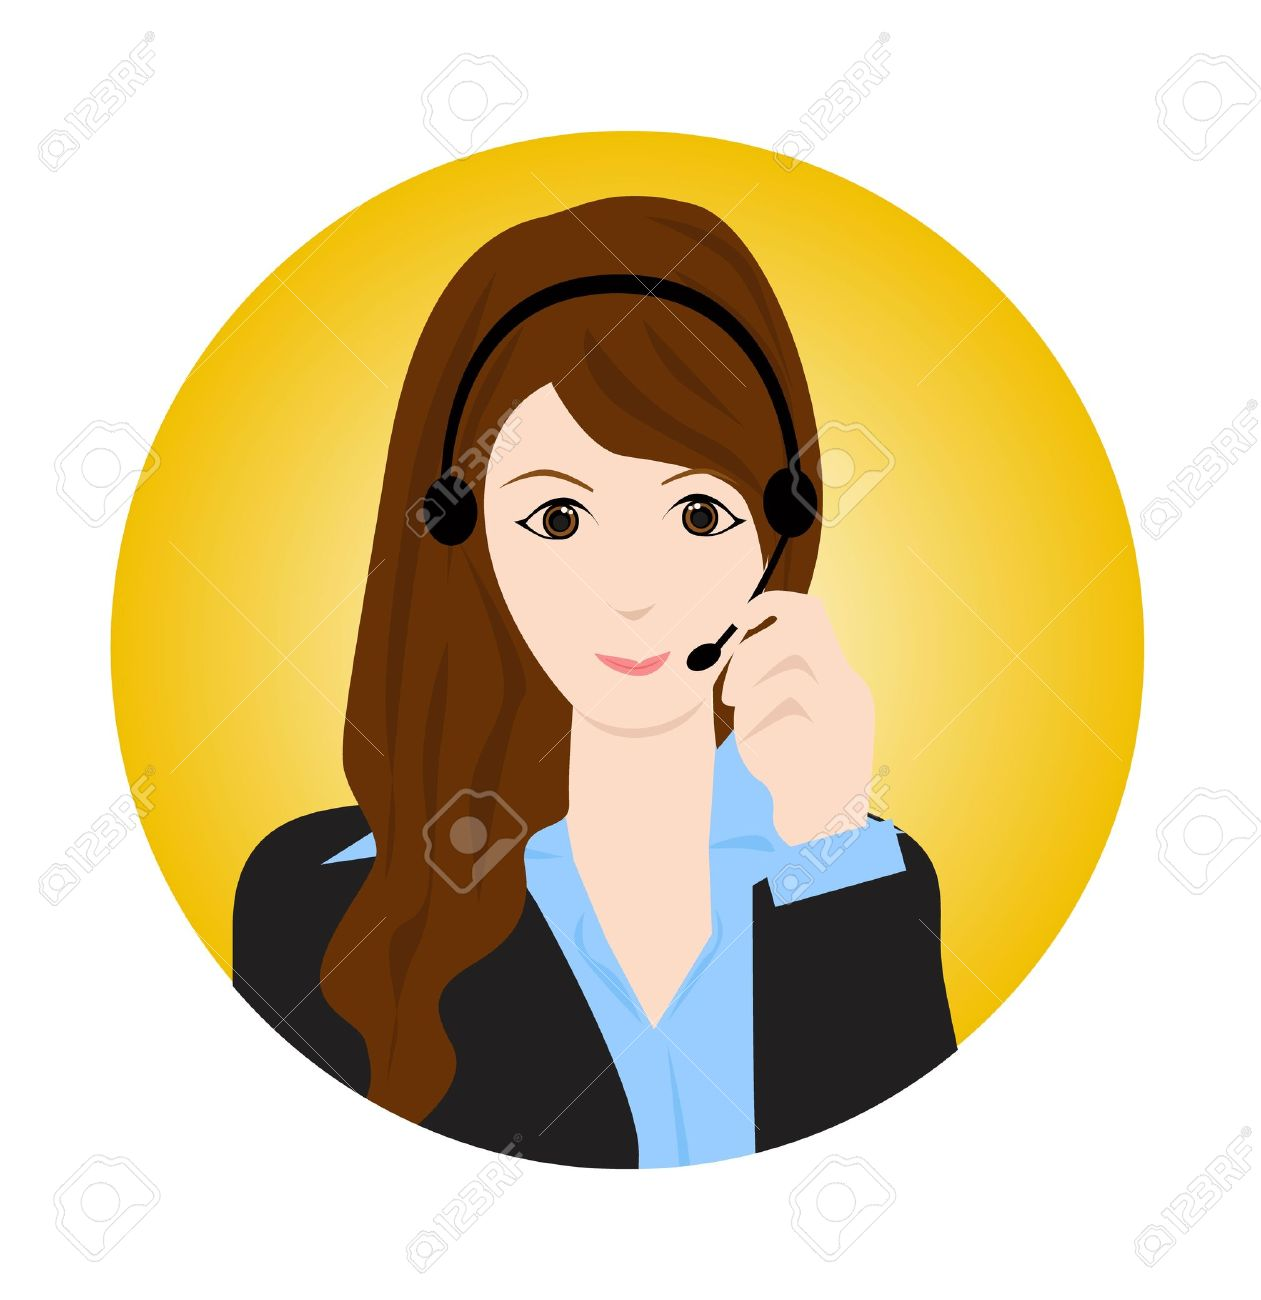 Customer support clipart jpg freeuse library Customer Clipart | Free download best Customer Clipart on ... jpg freeuse library